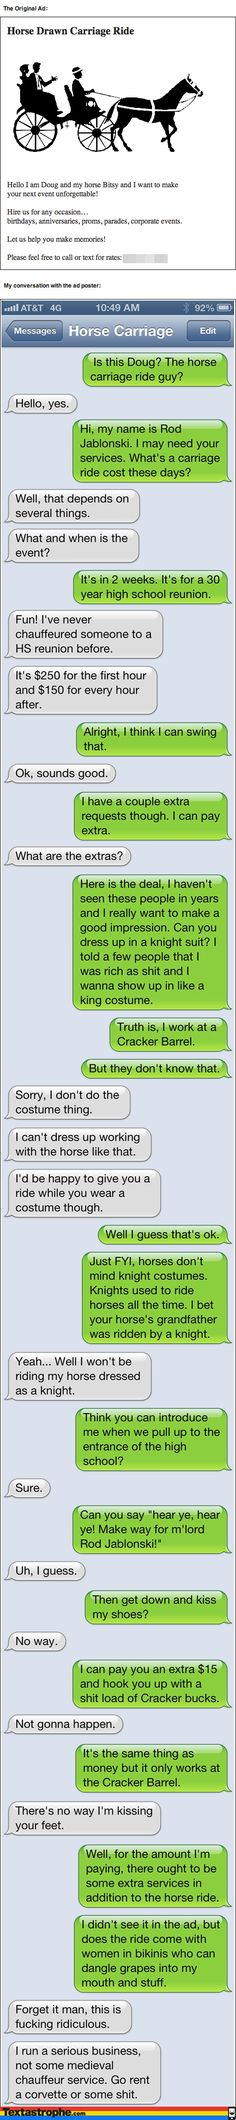 textastrophe. hilarious. will make you think twice about posting your phone number publicly.